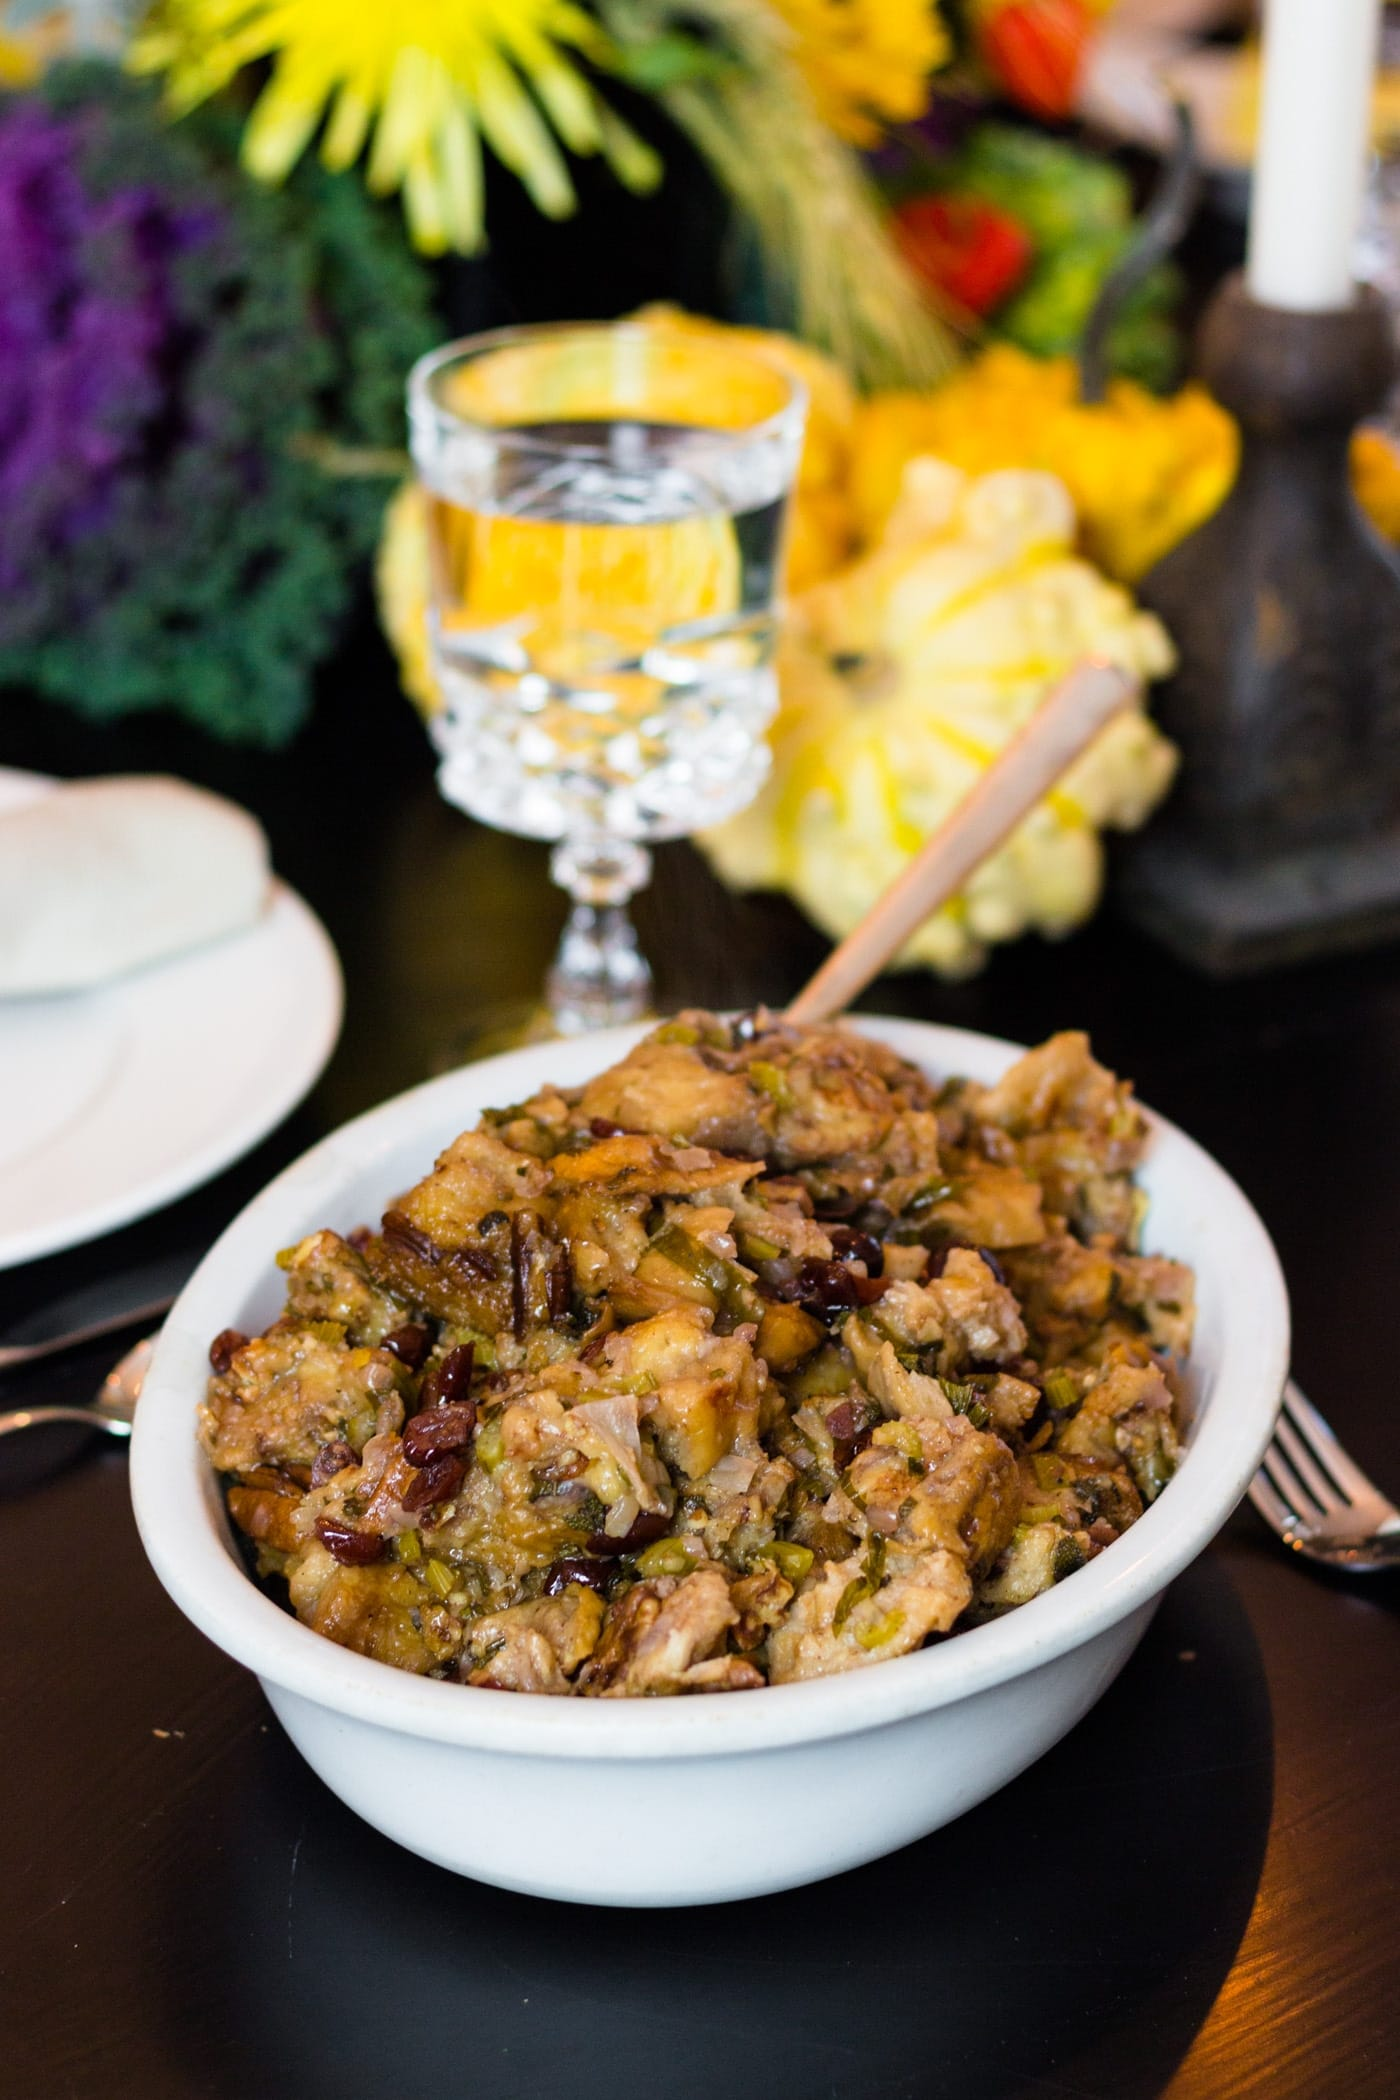 Crock-Pot stuffing in white bowl on a black table set with water glass, extra plates, pumpkins and vibrant flowers